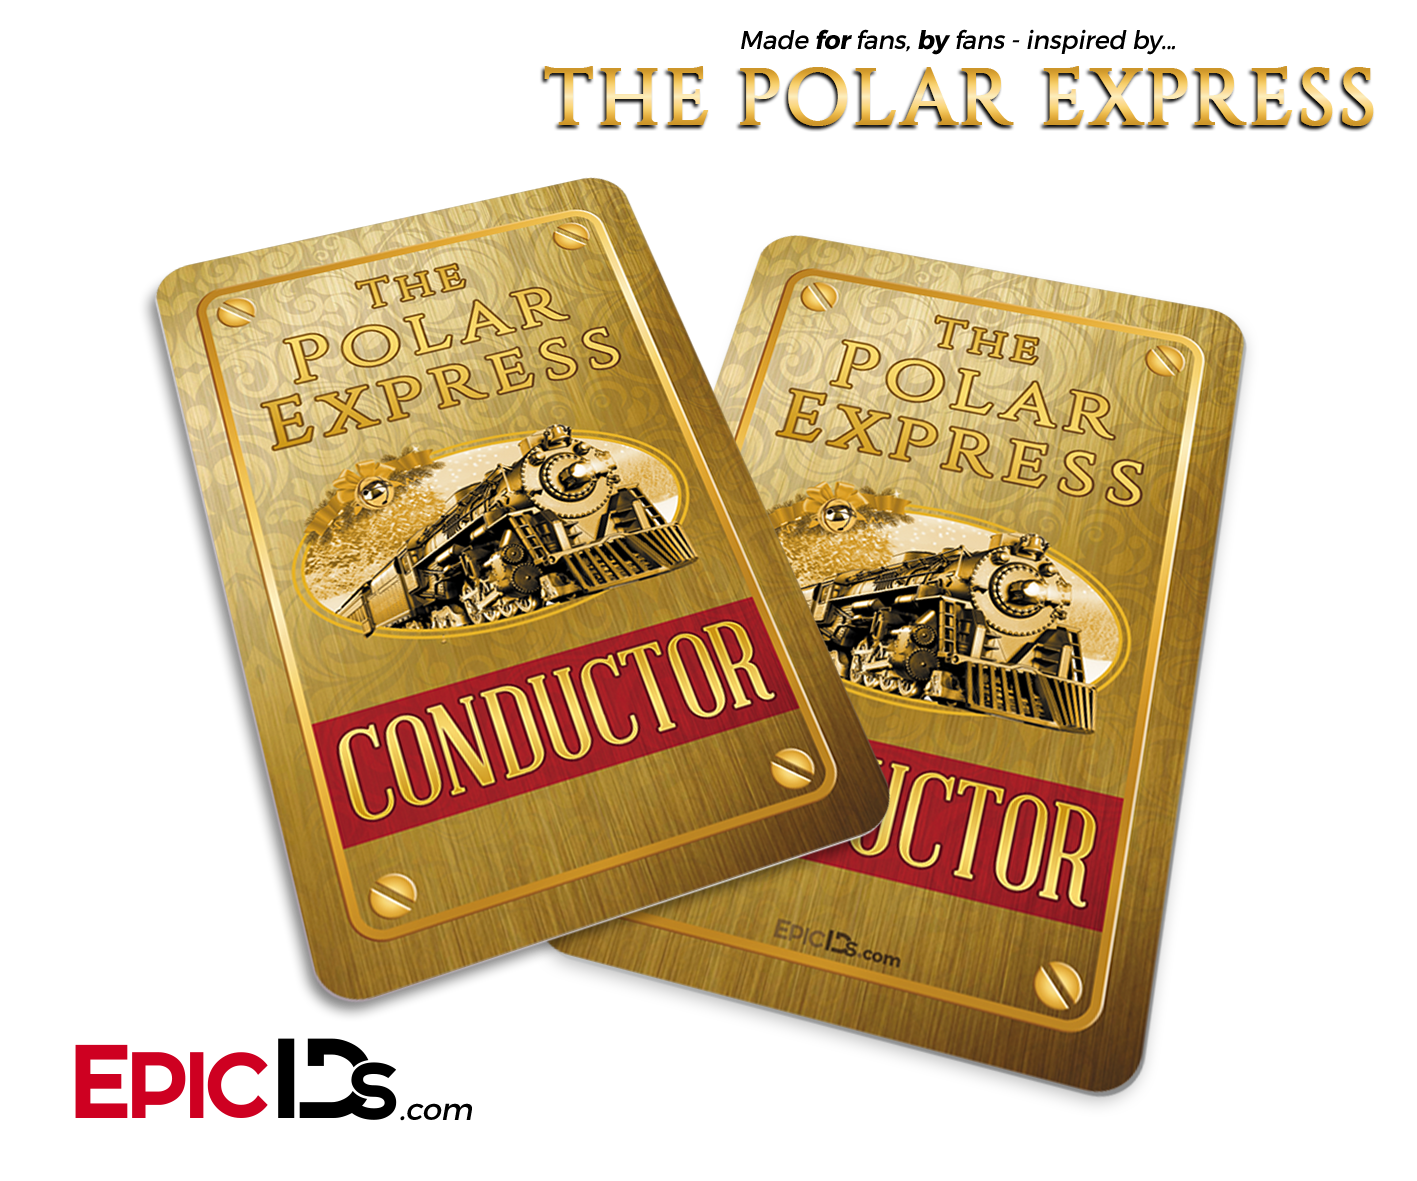 The Polar Express Inspired Train Conductor Id Card Polar Express Polar Express Theme Polar Express Party